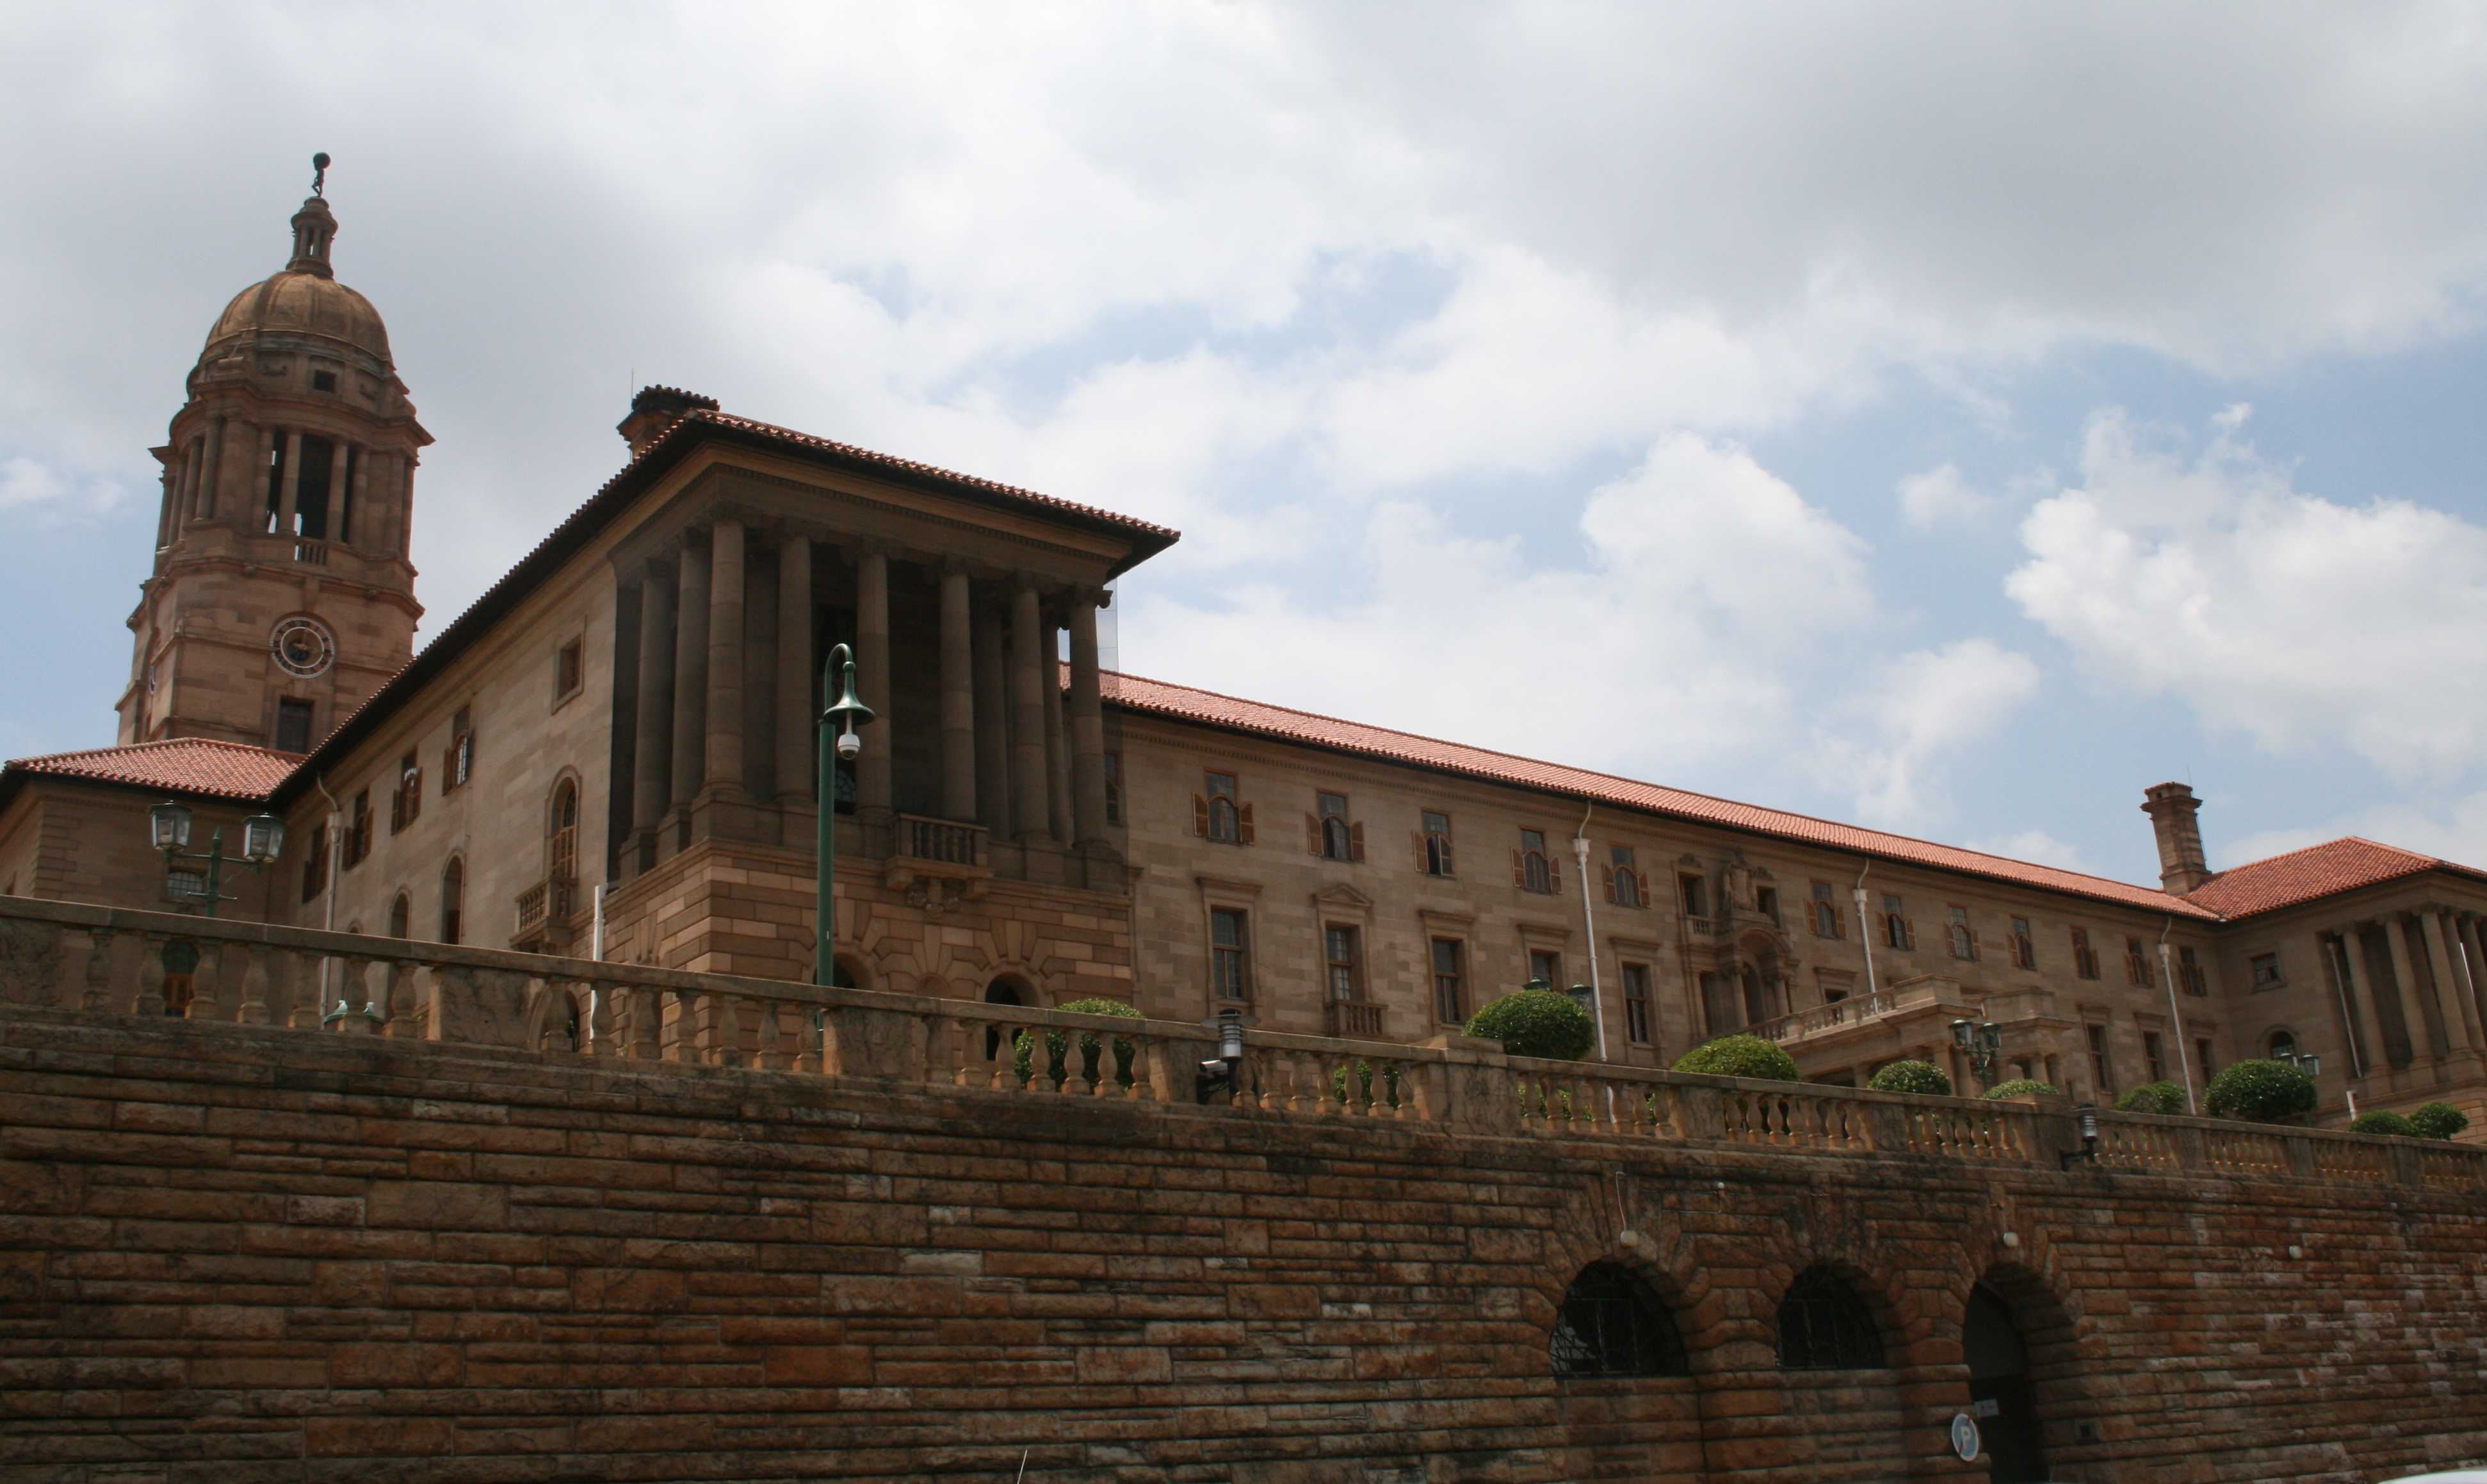 Looking up at the East Wing of the Union Buildings.